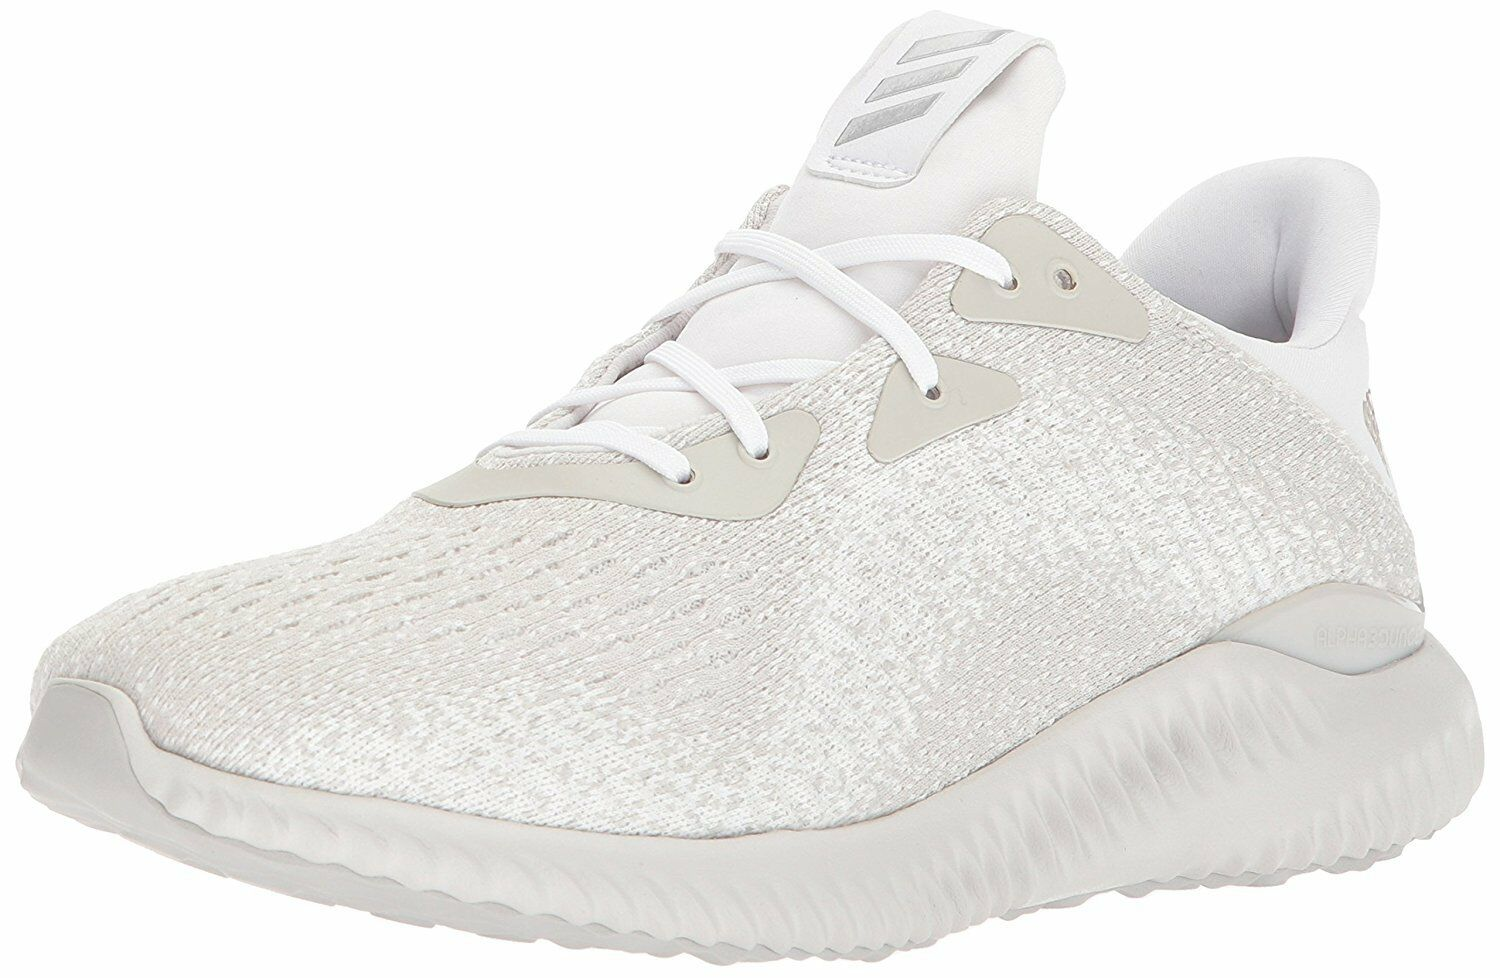 2f9391cf055f7 adidas Alphabounce EM Shoes Men s Running White 13 for sale online ...